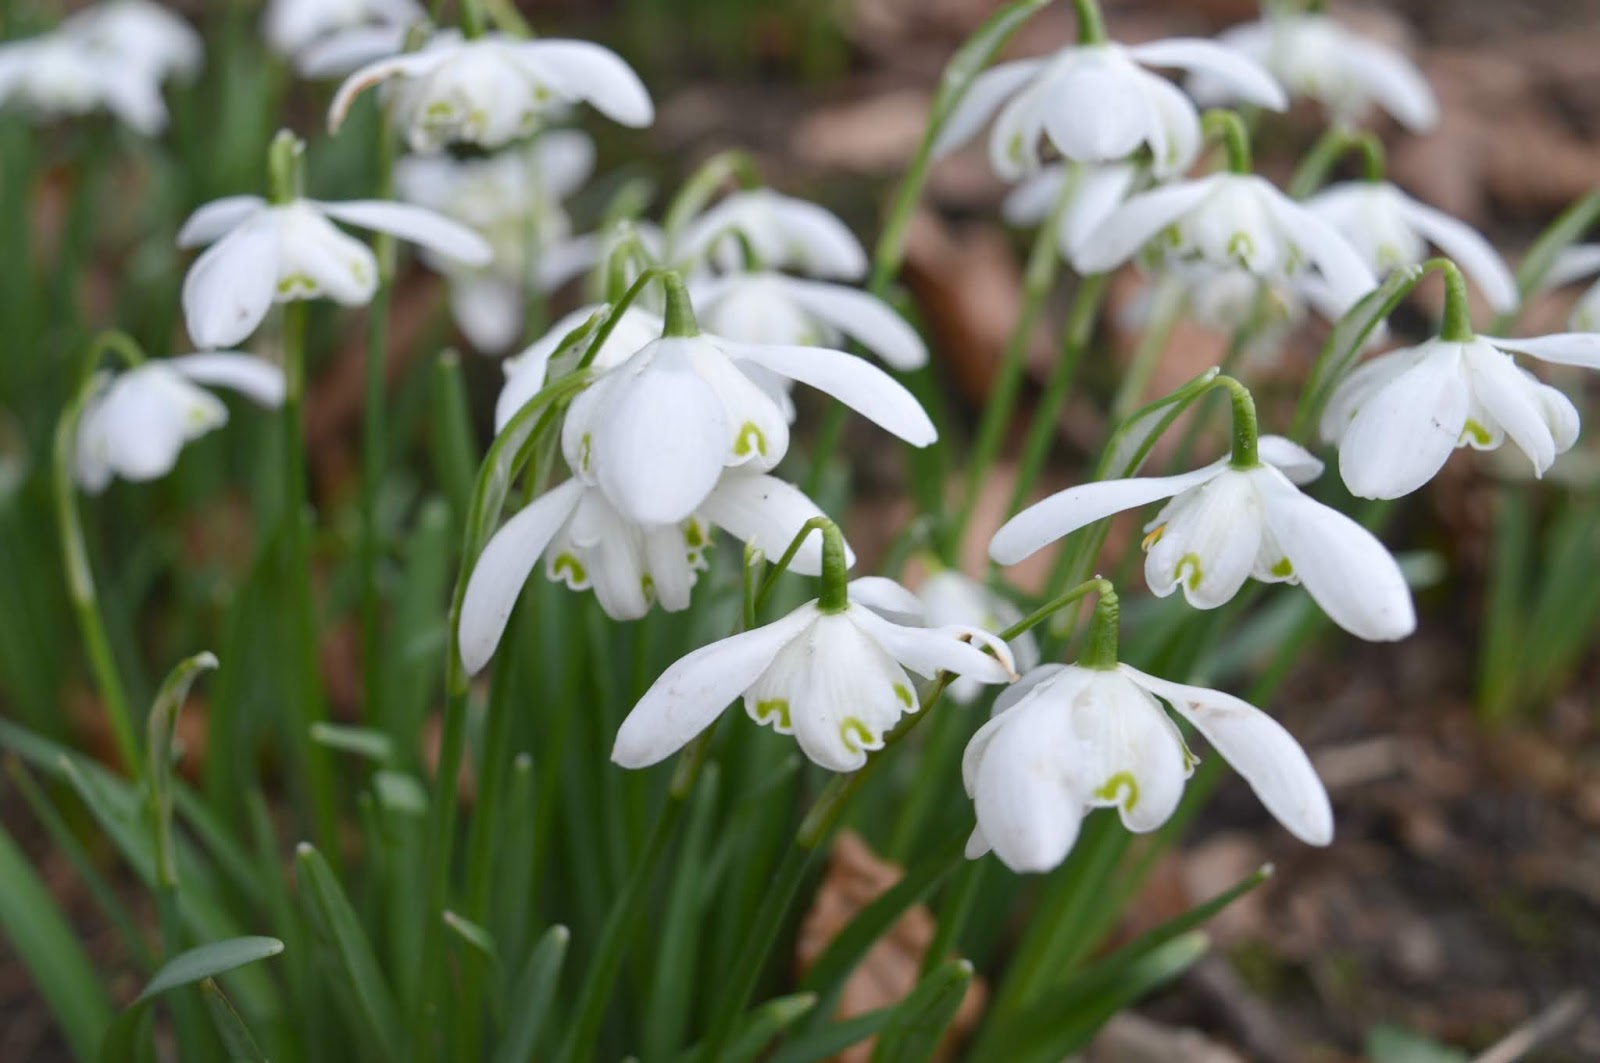 Snowdrops at Belsay Hall, Castle and Gardens